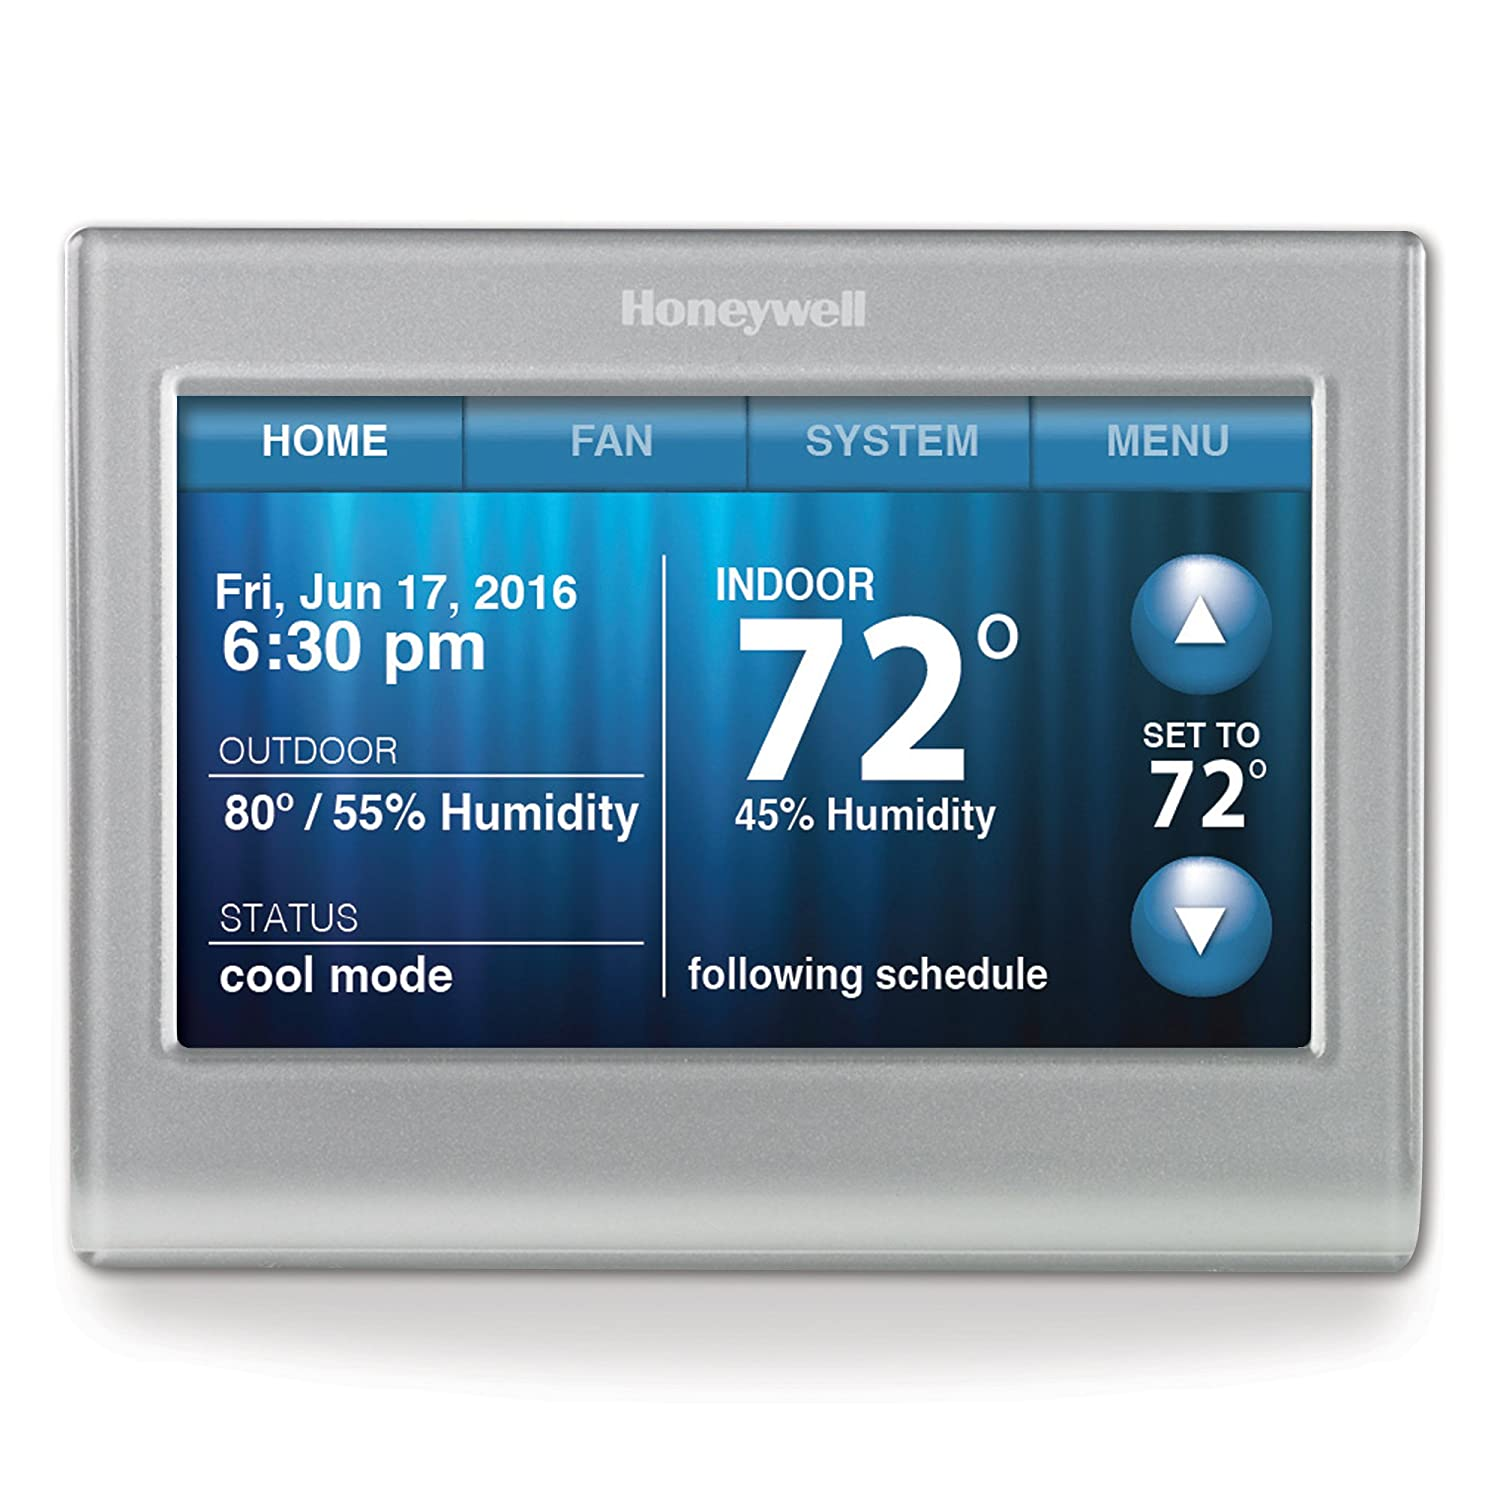 Honeywell RTH9580WF Smart Wi-Fi 7 Day Programmable Color Touch Thermostat,  Works with Alexa - Programmable Household Thermostats - Amazon.com